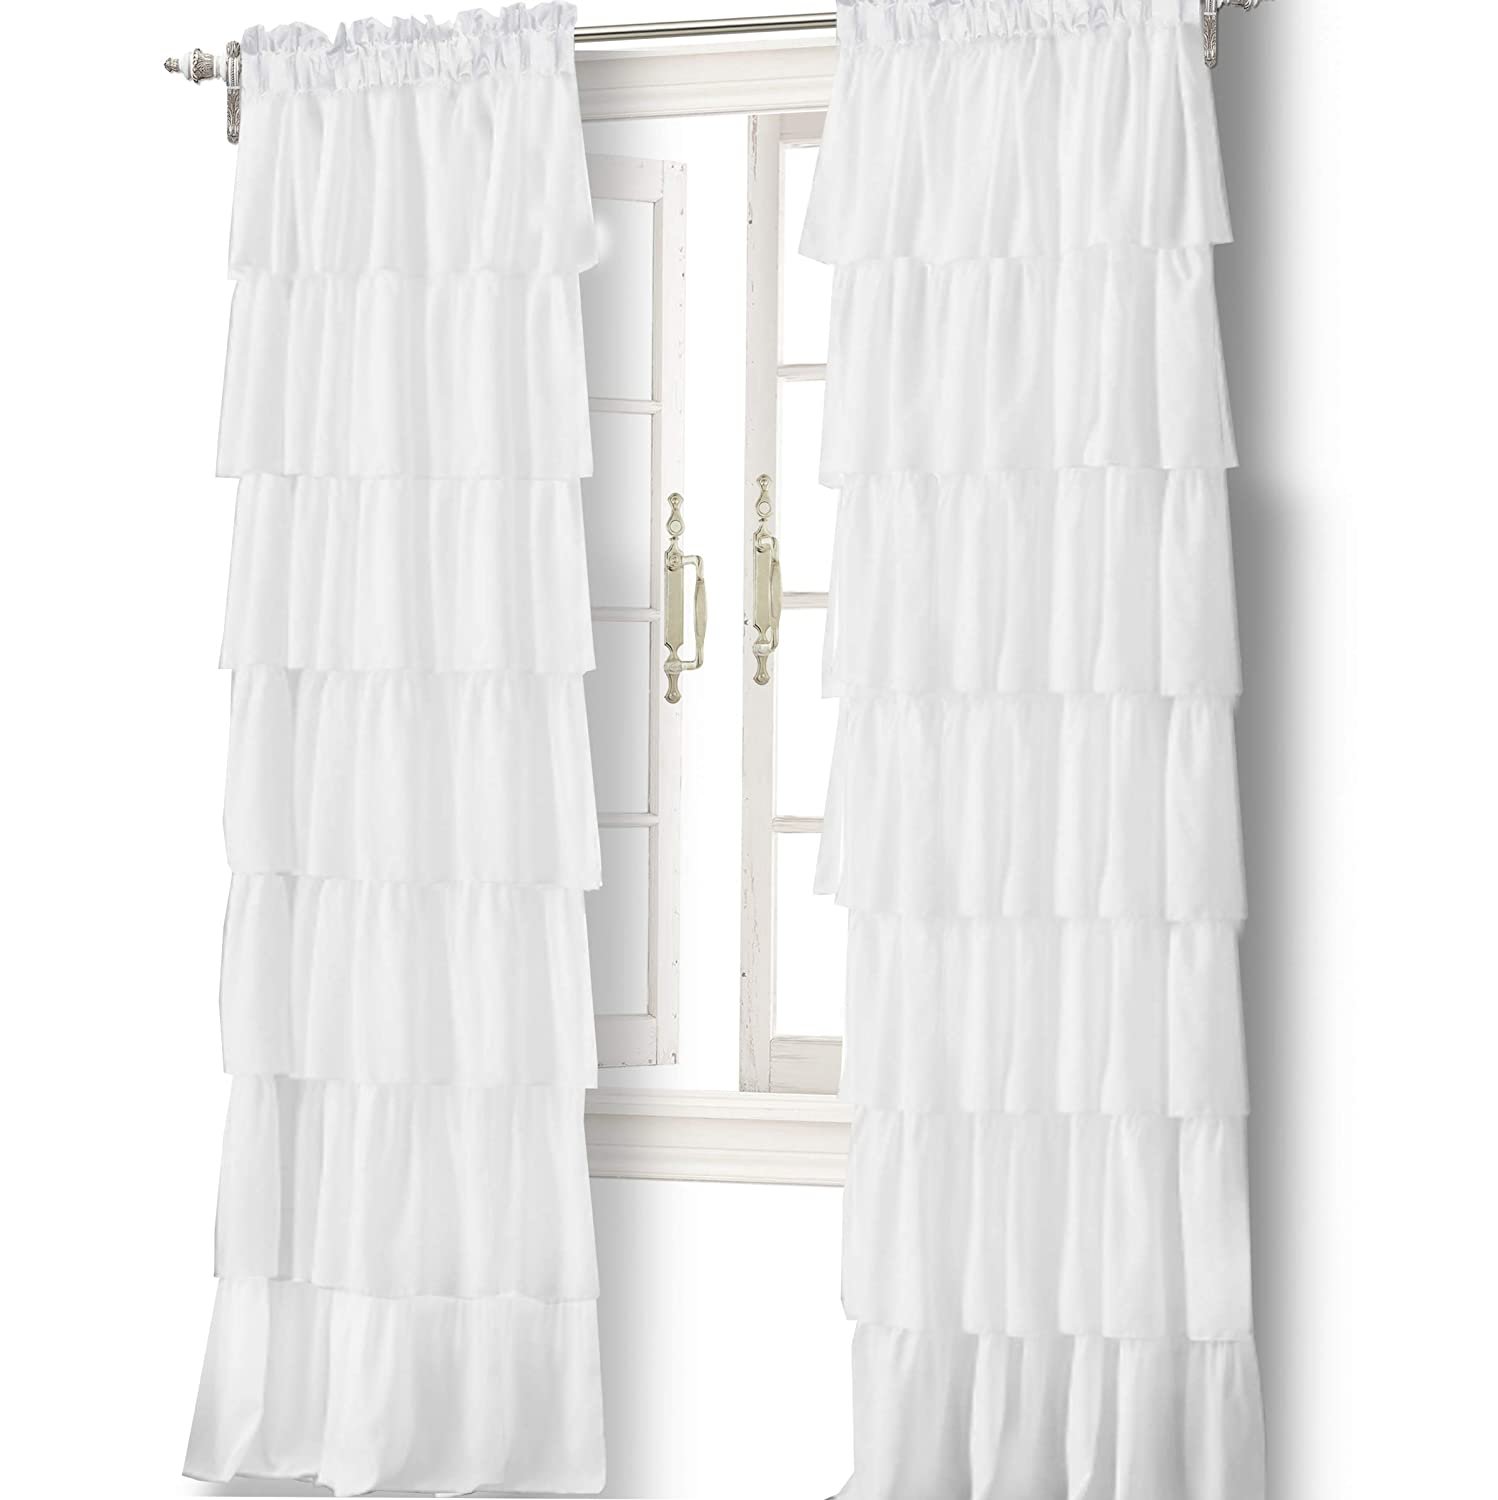 "DriftAway Pom Pom Ruffle Window Curtain Valance for Kids Room, Rod Pocket, One Panel, 52""x18"" Plus 2"